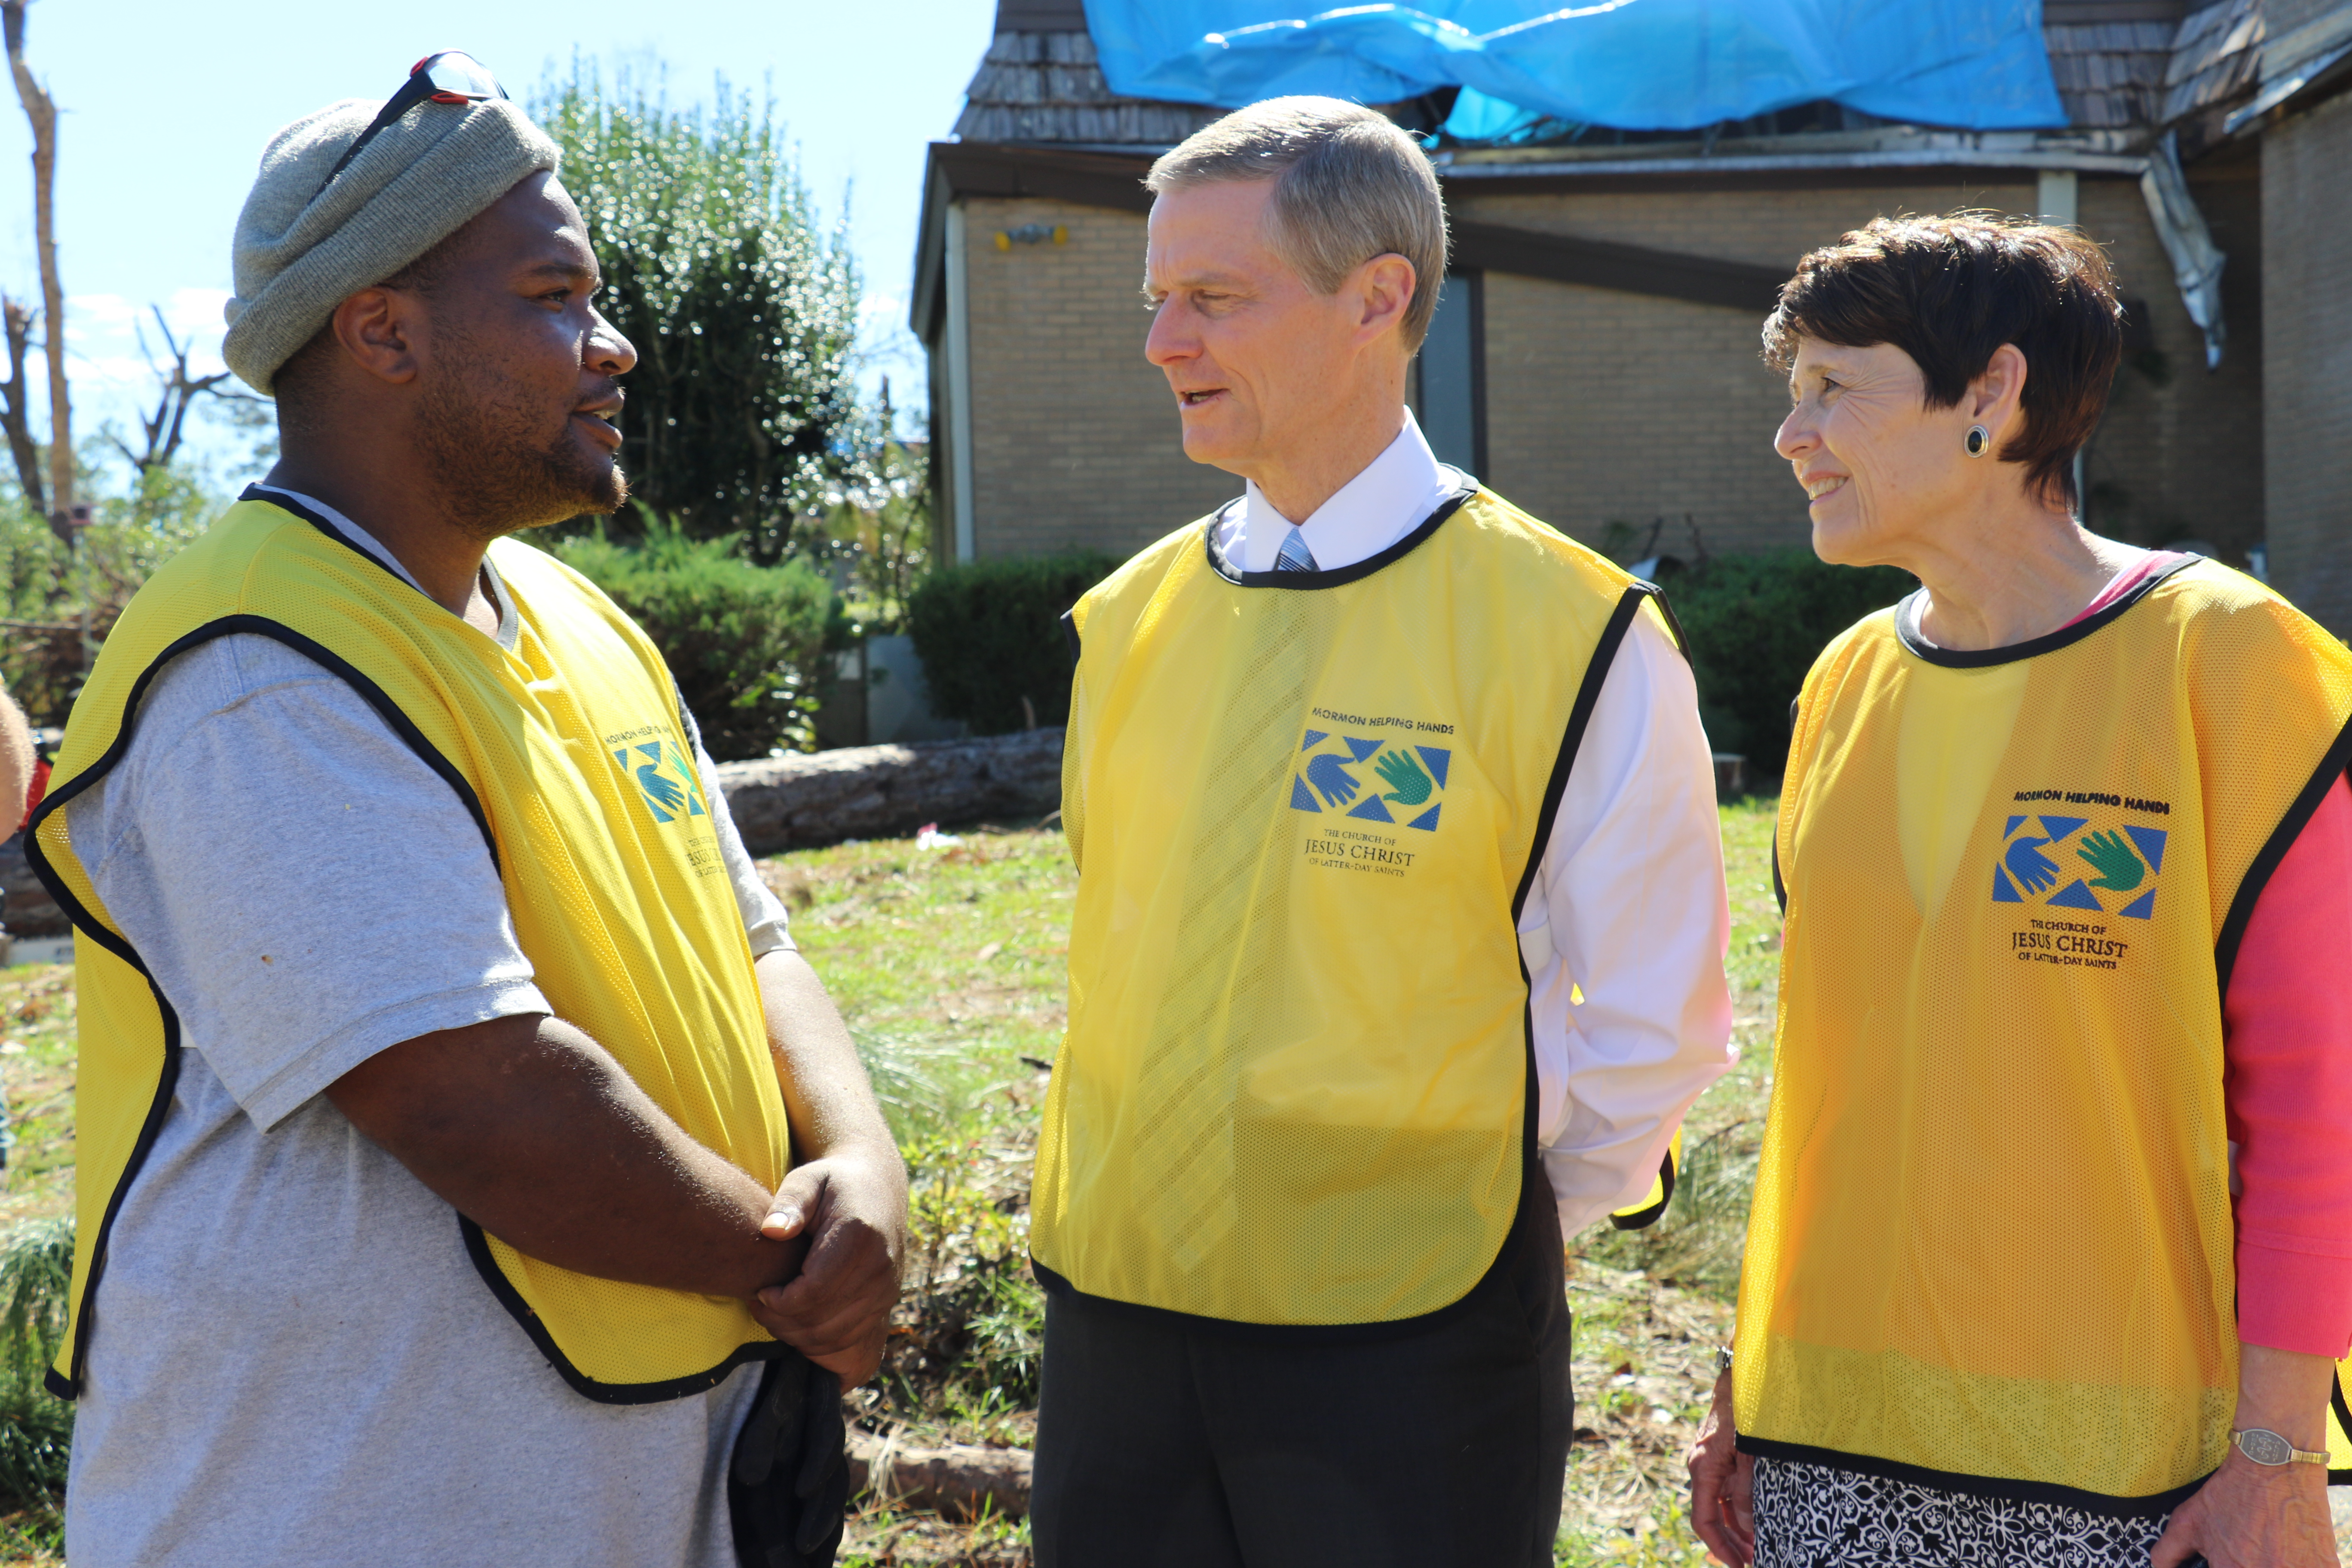 Elder David A. Bednar of The Church of Jesus Christ of Latter-day Saints' Quorum of the Twelve Apostles and his wife, Sister Susan Bednar, enjoy getting to know Dennis Kern, a recent Church convert and Helping Hands volunteer in Marianna, Florida.